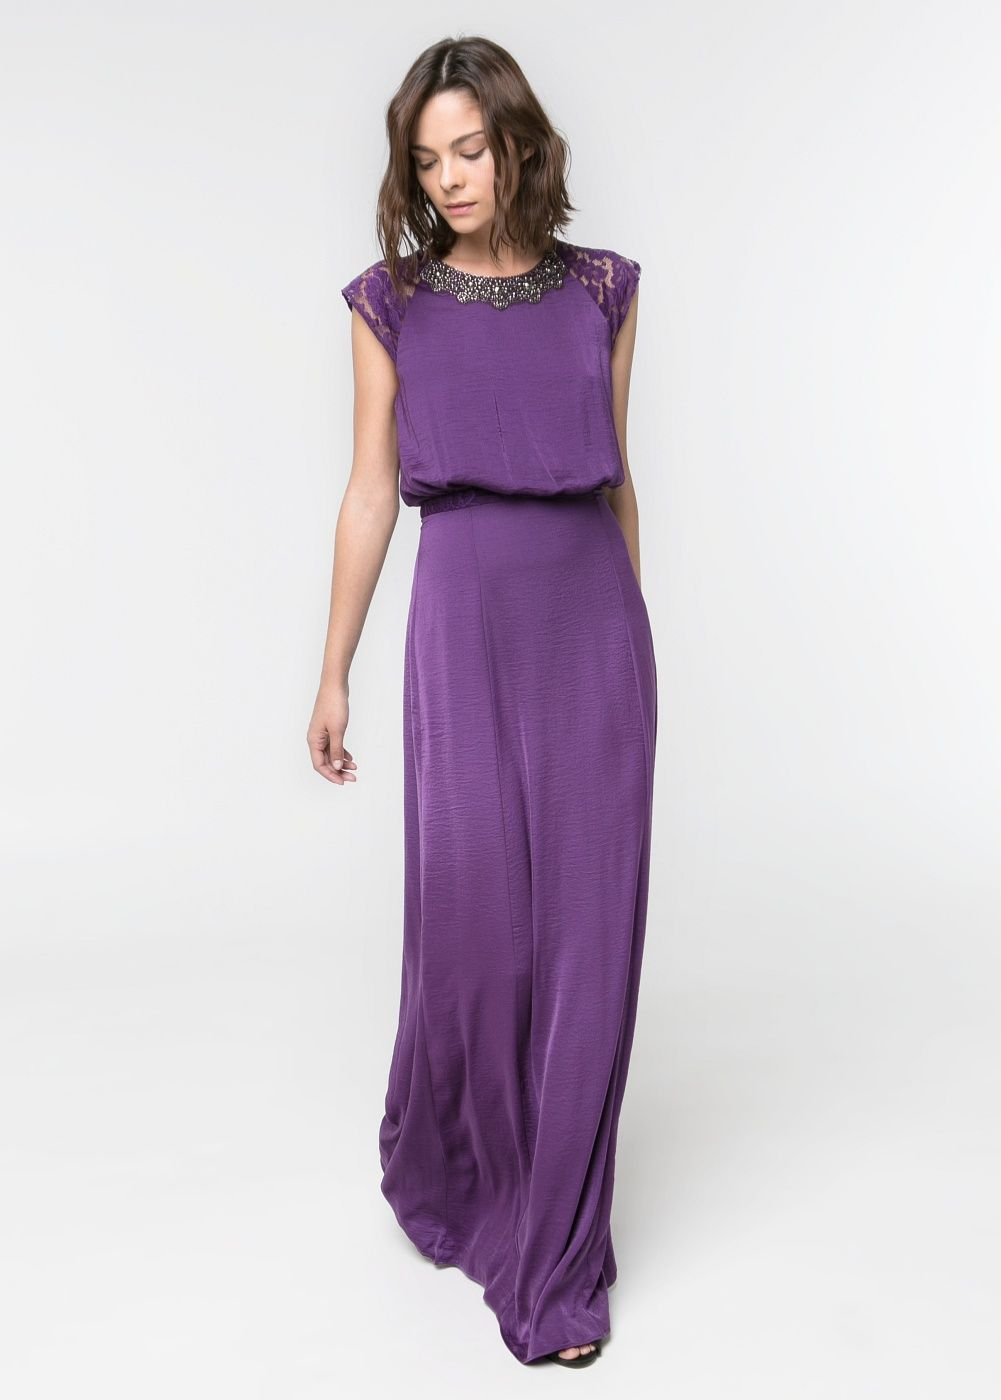 Bead gown - Women | Floral lace, Gowns and Beads